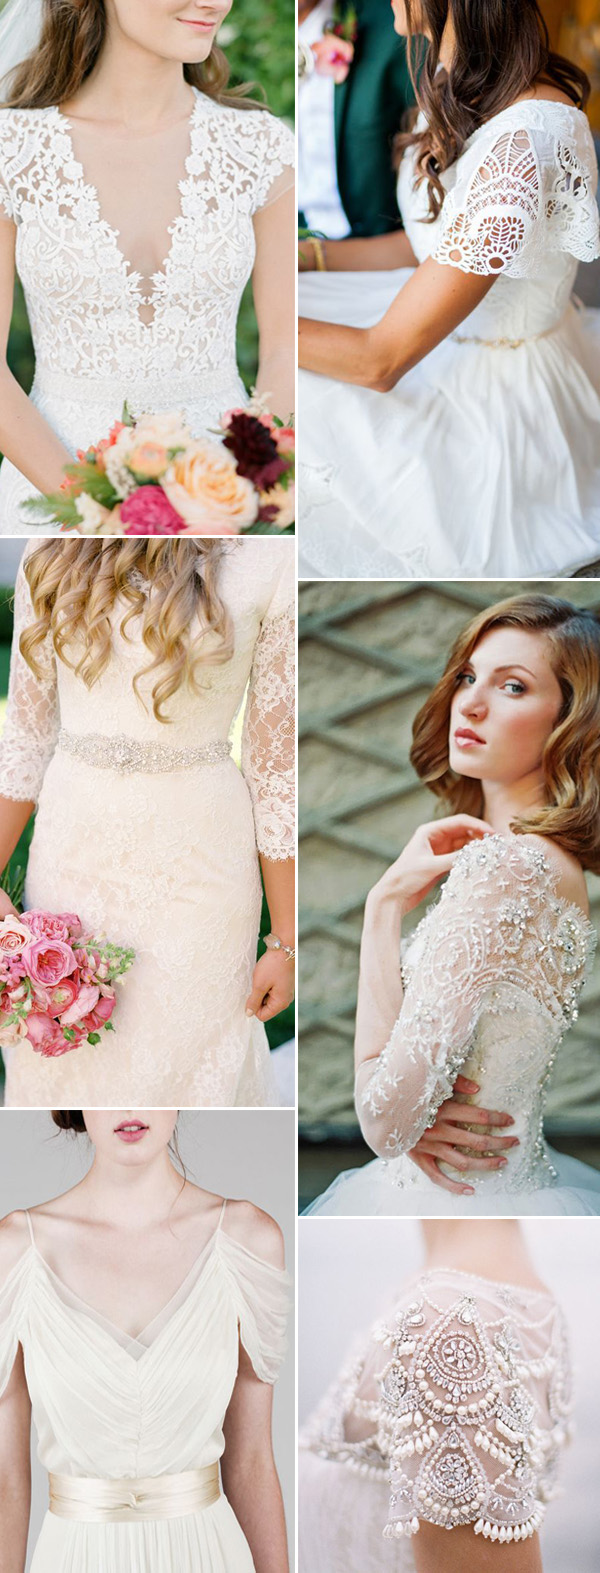 wedding dresses sleeves ideas & details for 2017 trends